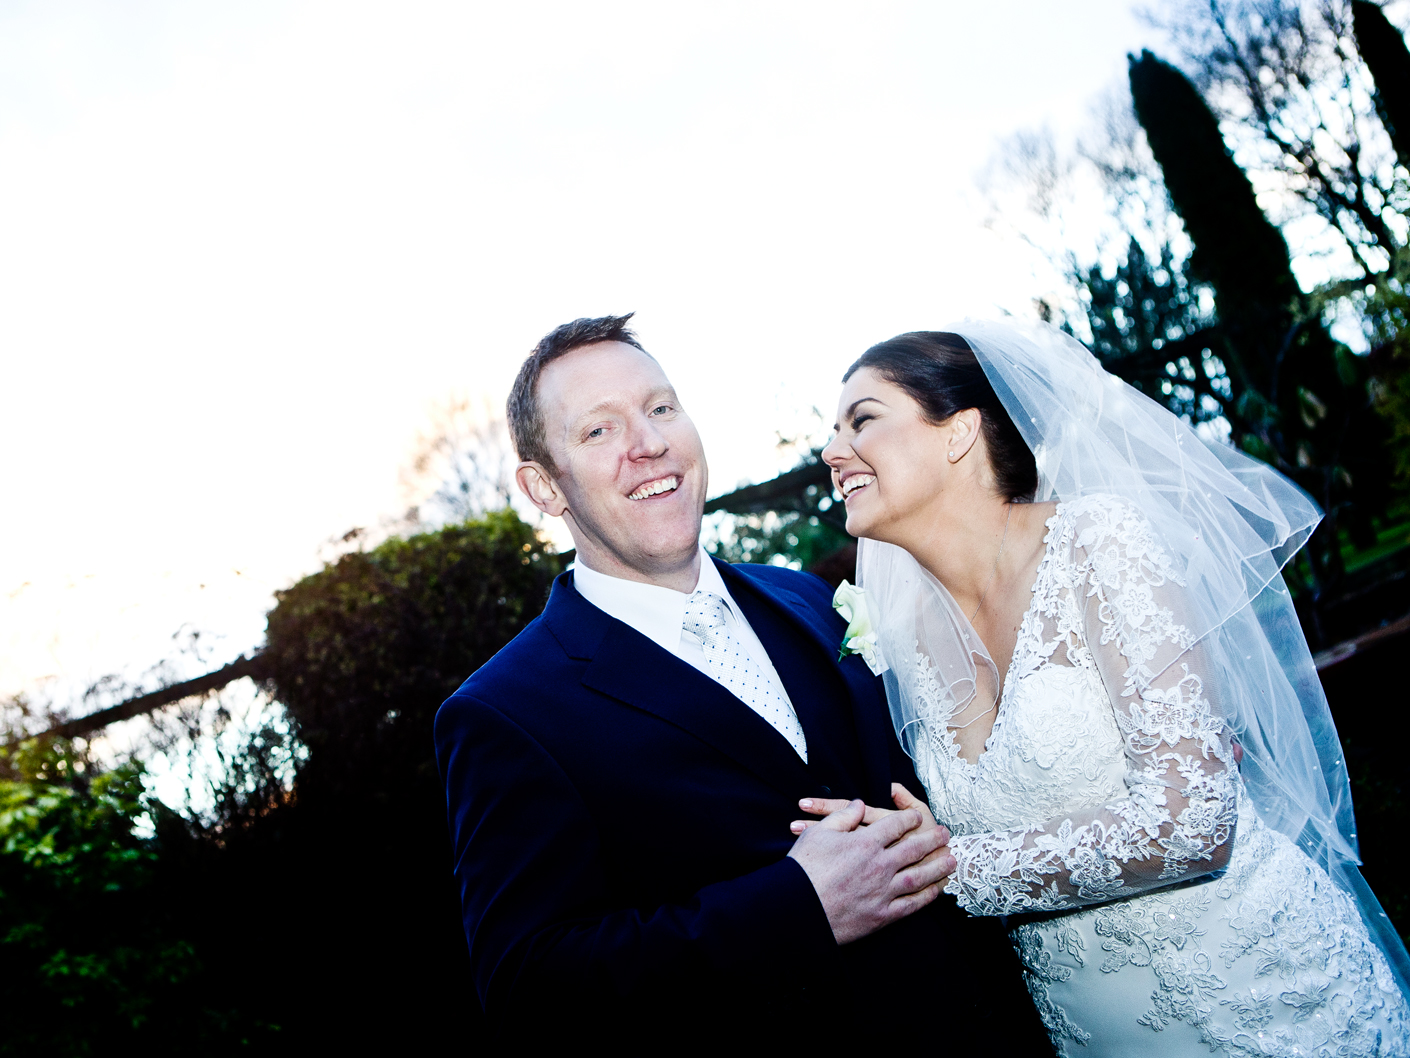 photography-of-the-bride-and-groom-at-the-cheshire-wedding-venue-nunsmere-hall-hotel